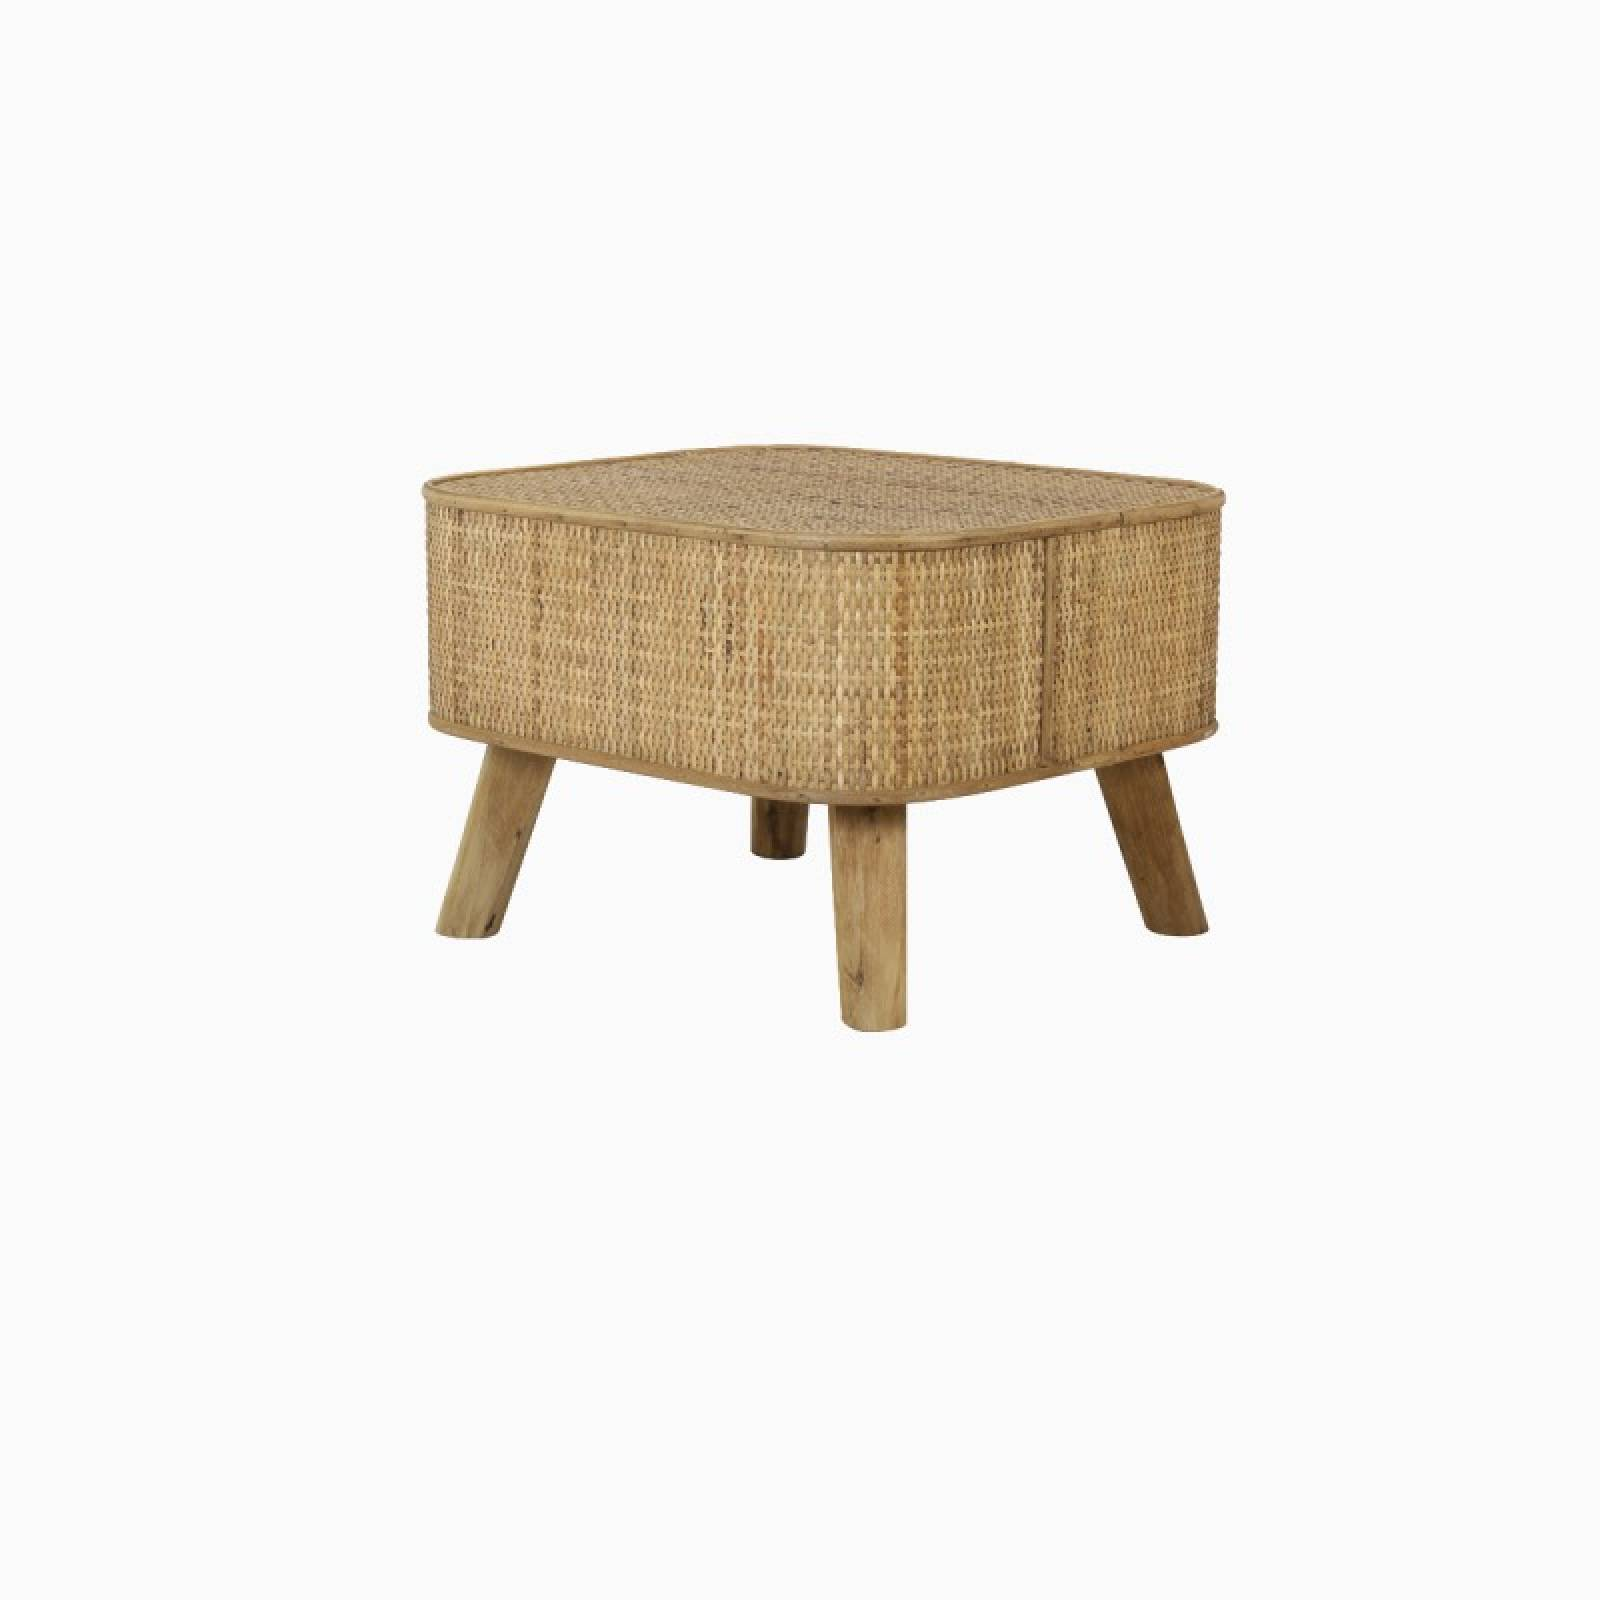 Canya Rectangular Woven Cane Side Table In Natural